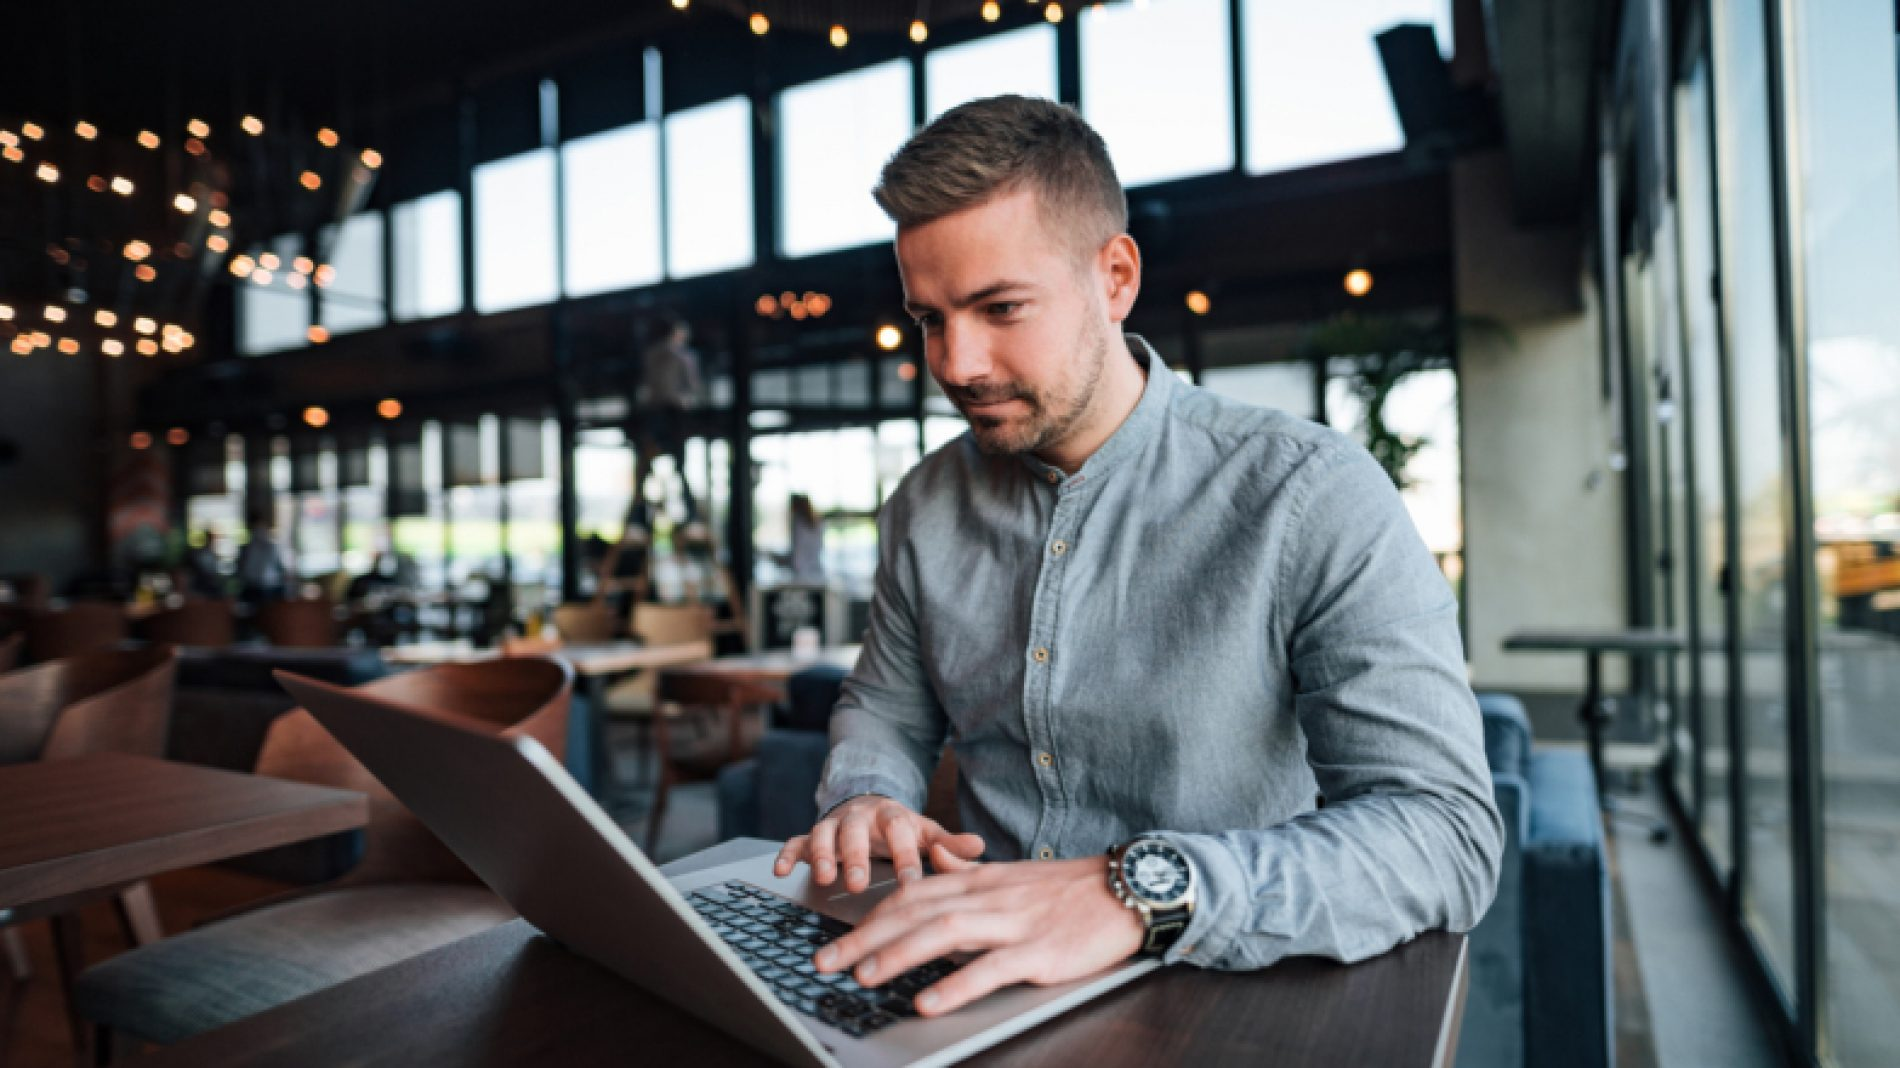 Young-person-tying-on-laptop-in-a-cafe-TE54XA